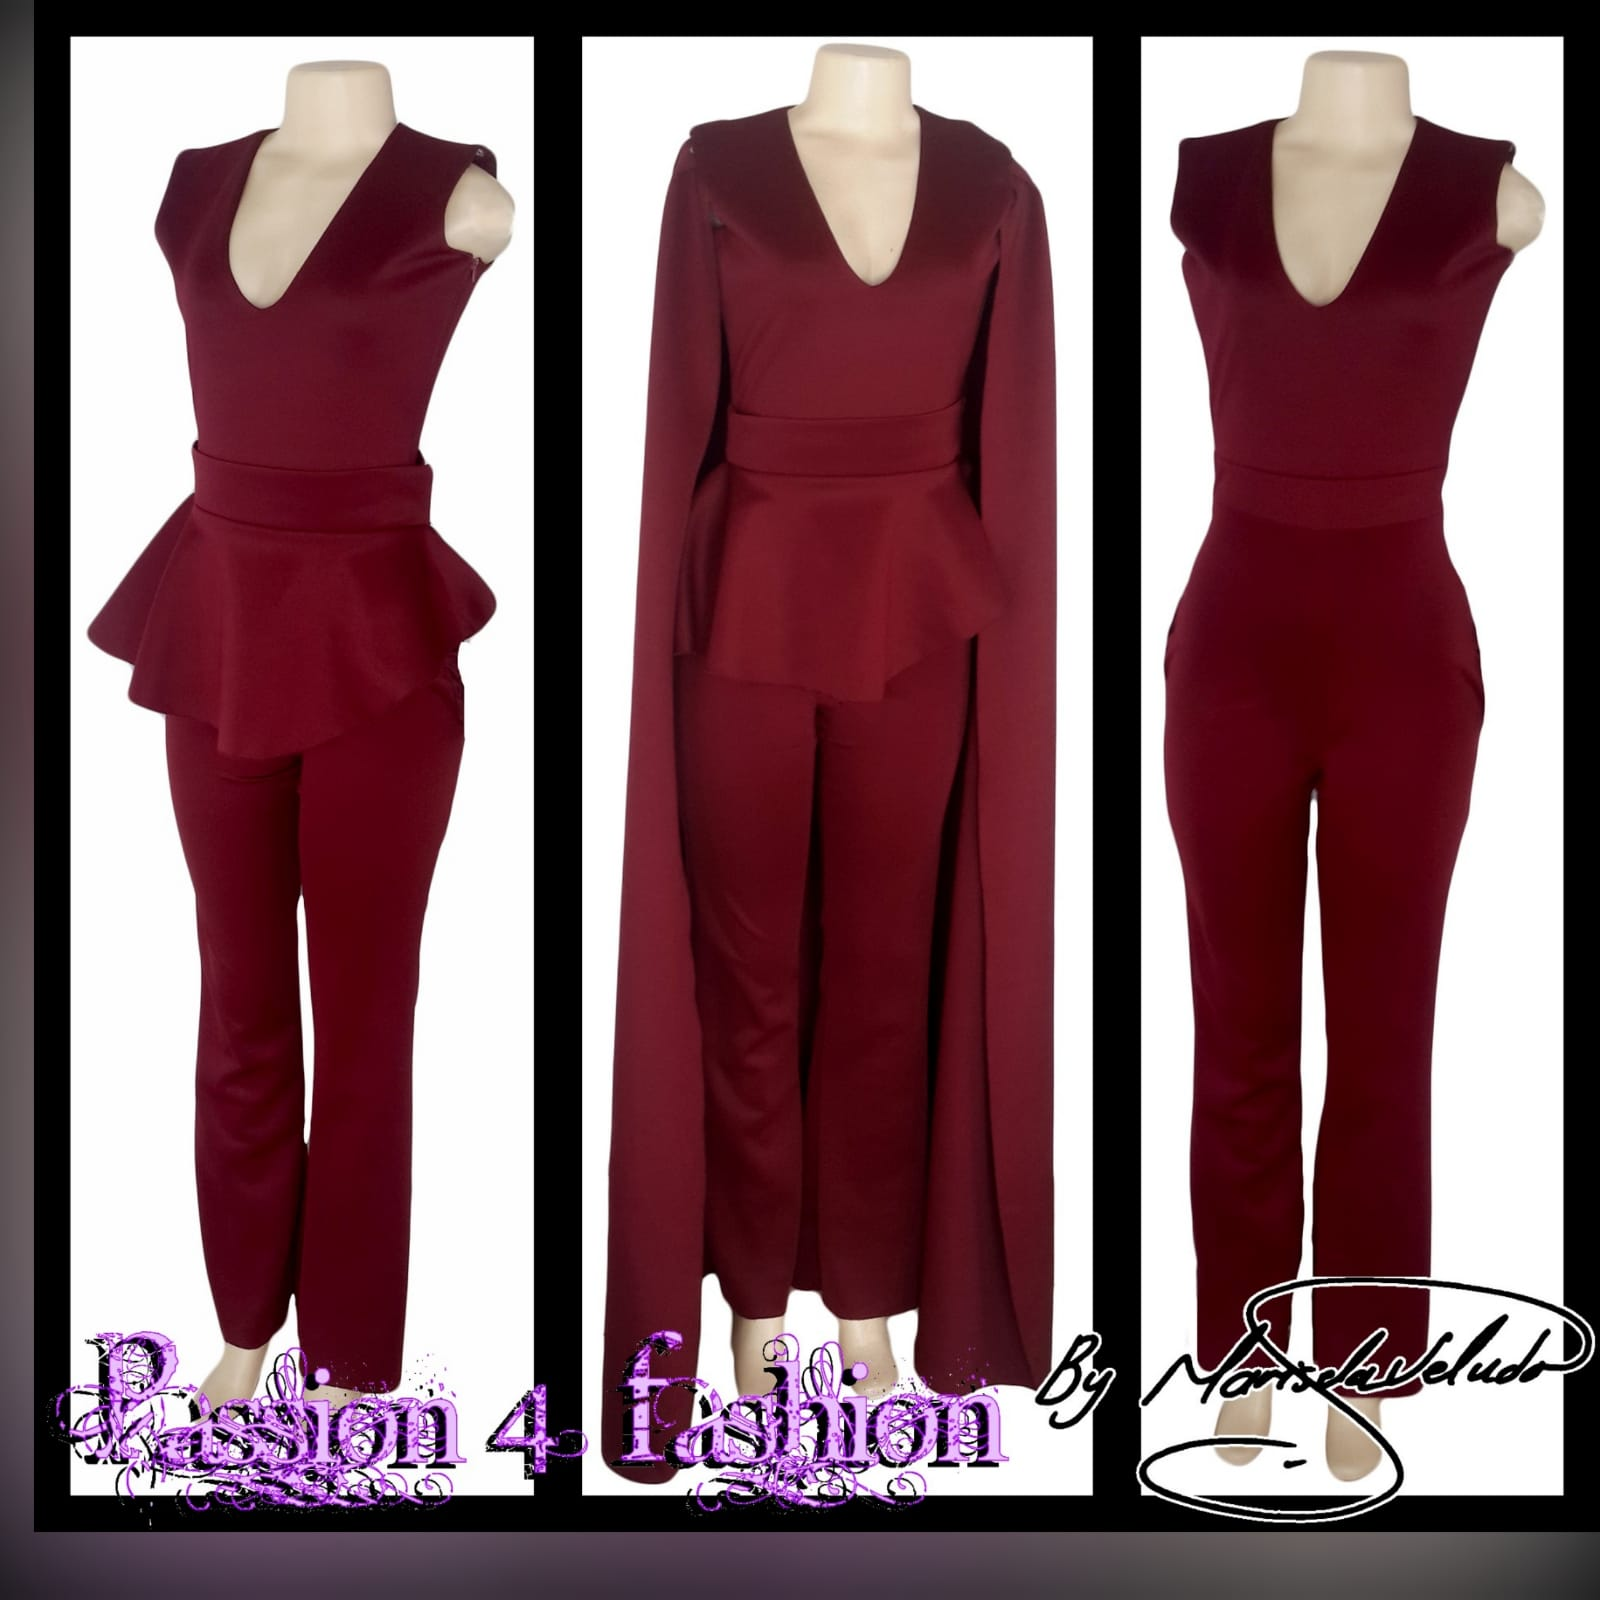 3 piece burgundy evening outfit 5 3 piece burgundy evening outfit. Bodysuit with a v neckline, with a removable peplum belt. With a removable shoulder cape